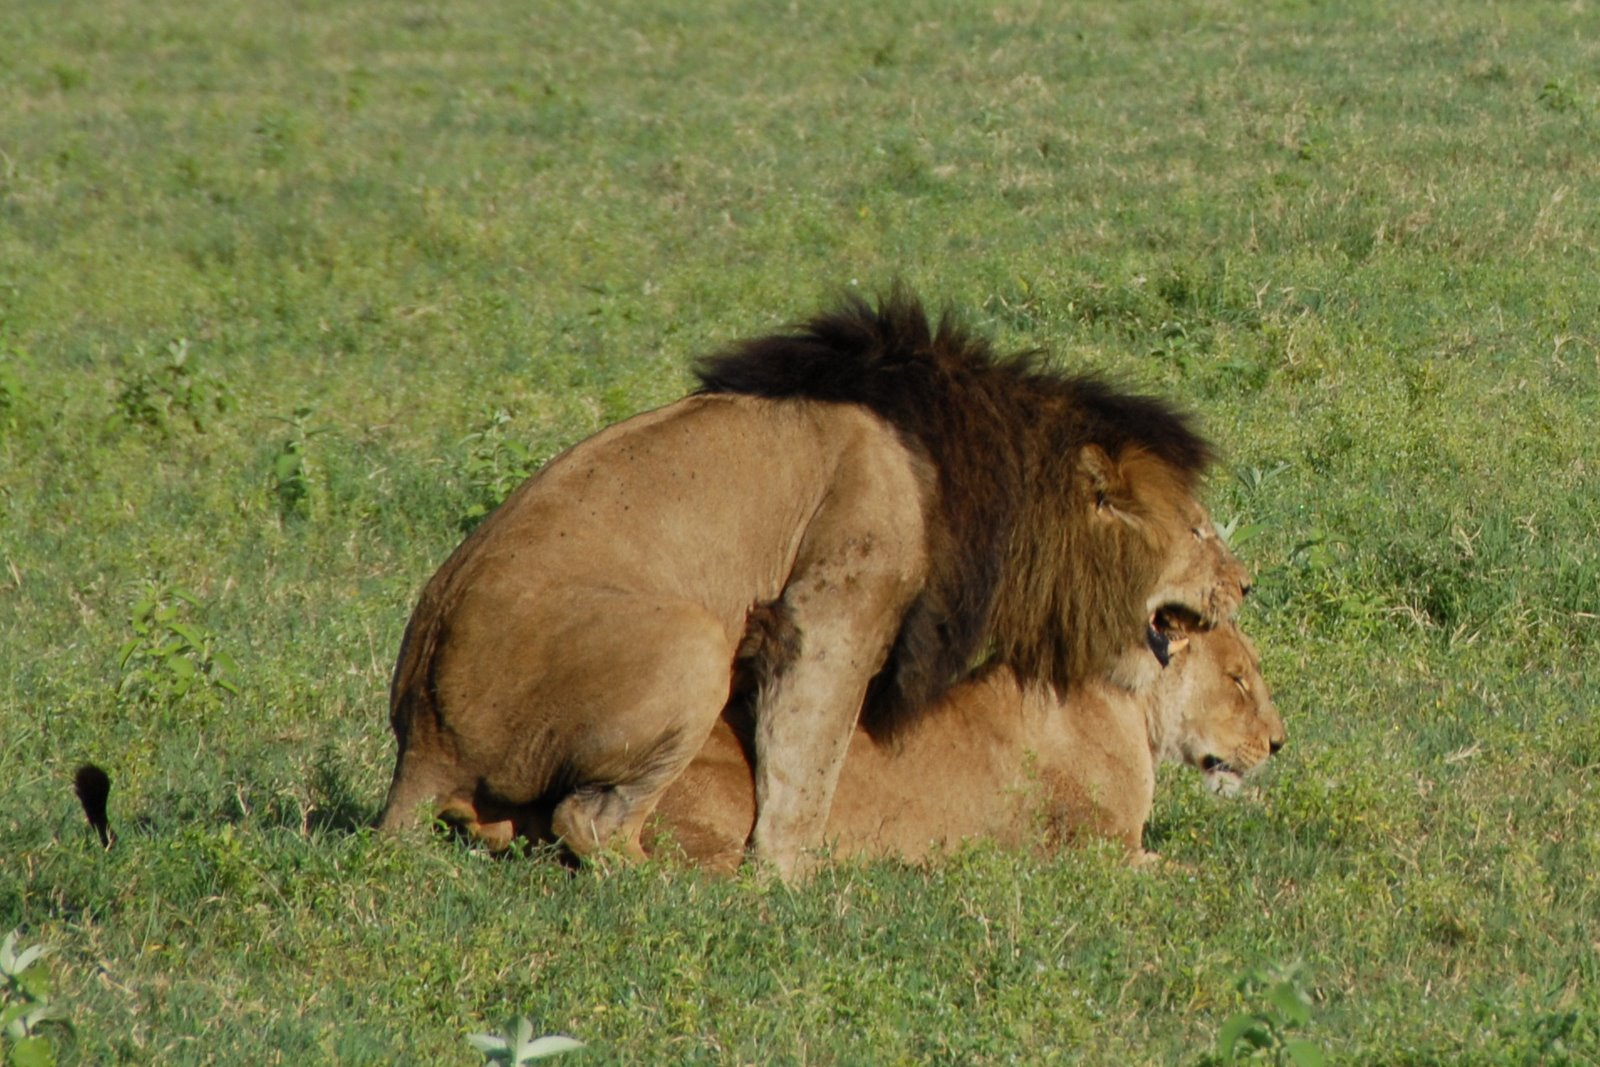 http://upload.wikimedia.org/wikipedia/commons/d/de/Panthera_leo_-Ngorongoro_Conservation_Area%2C_Tanzania_-mating-8.jpg